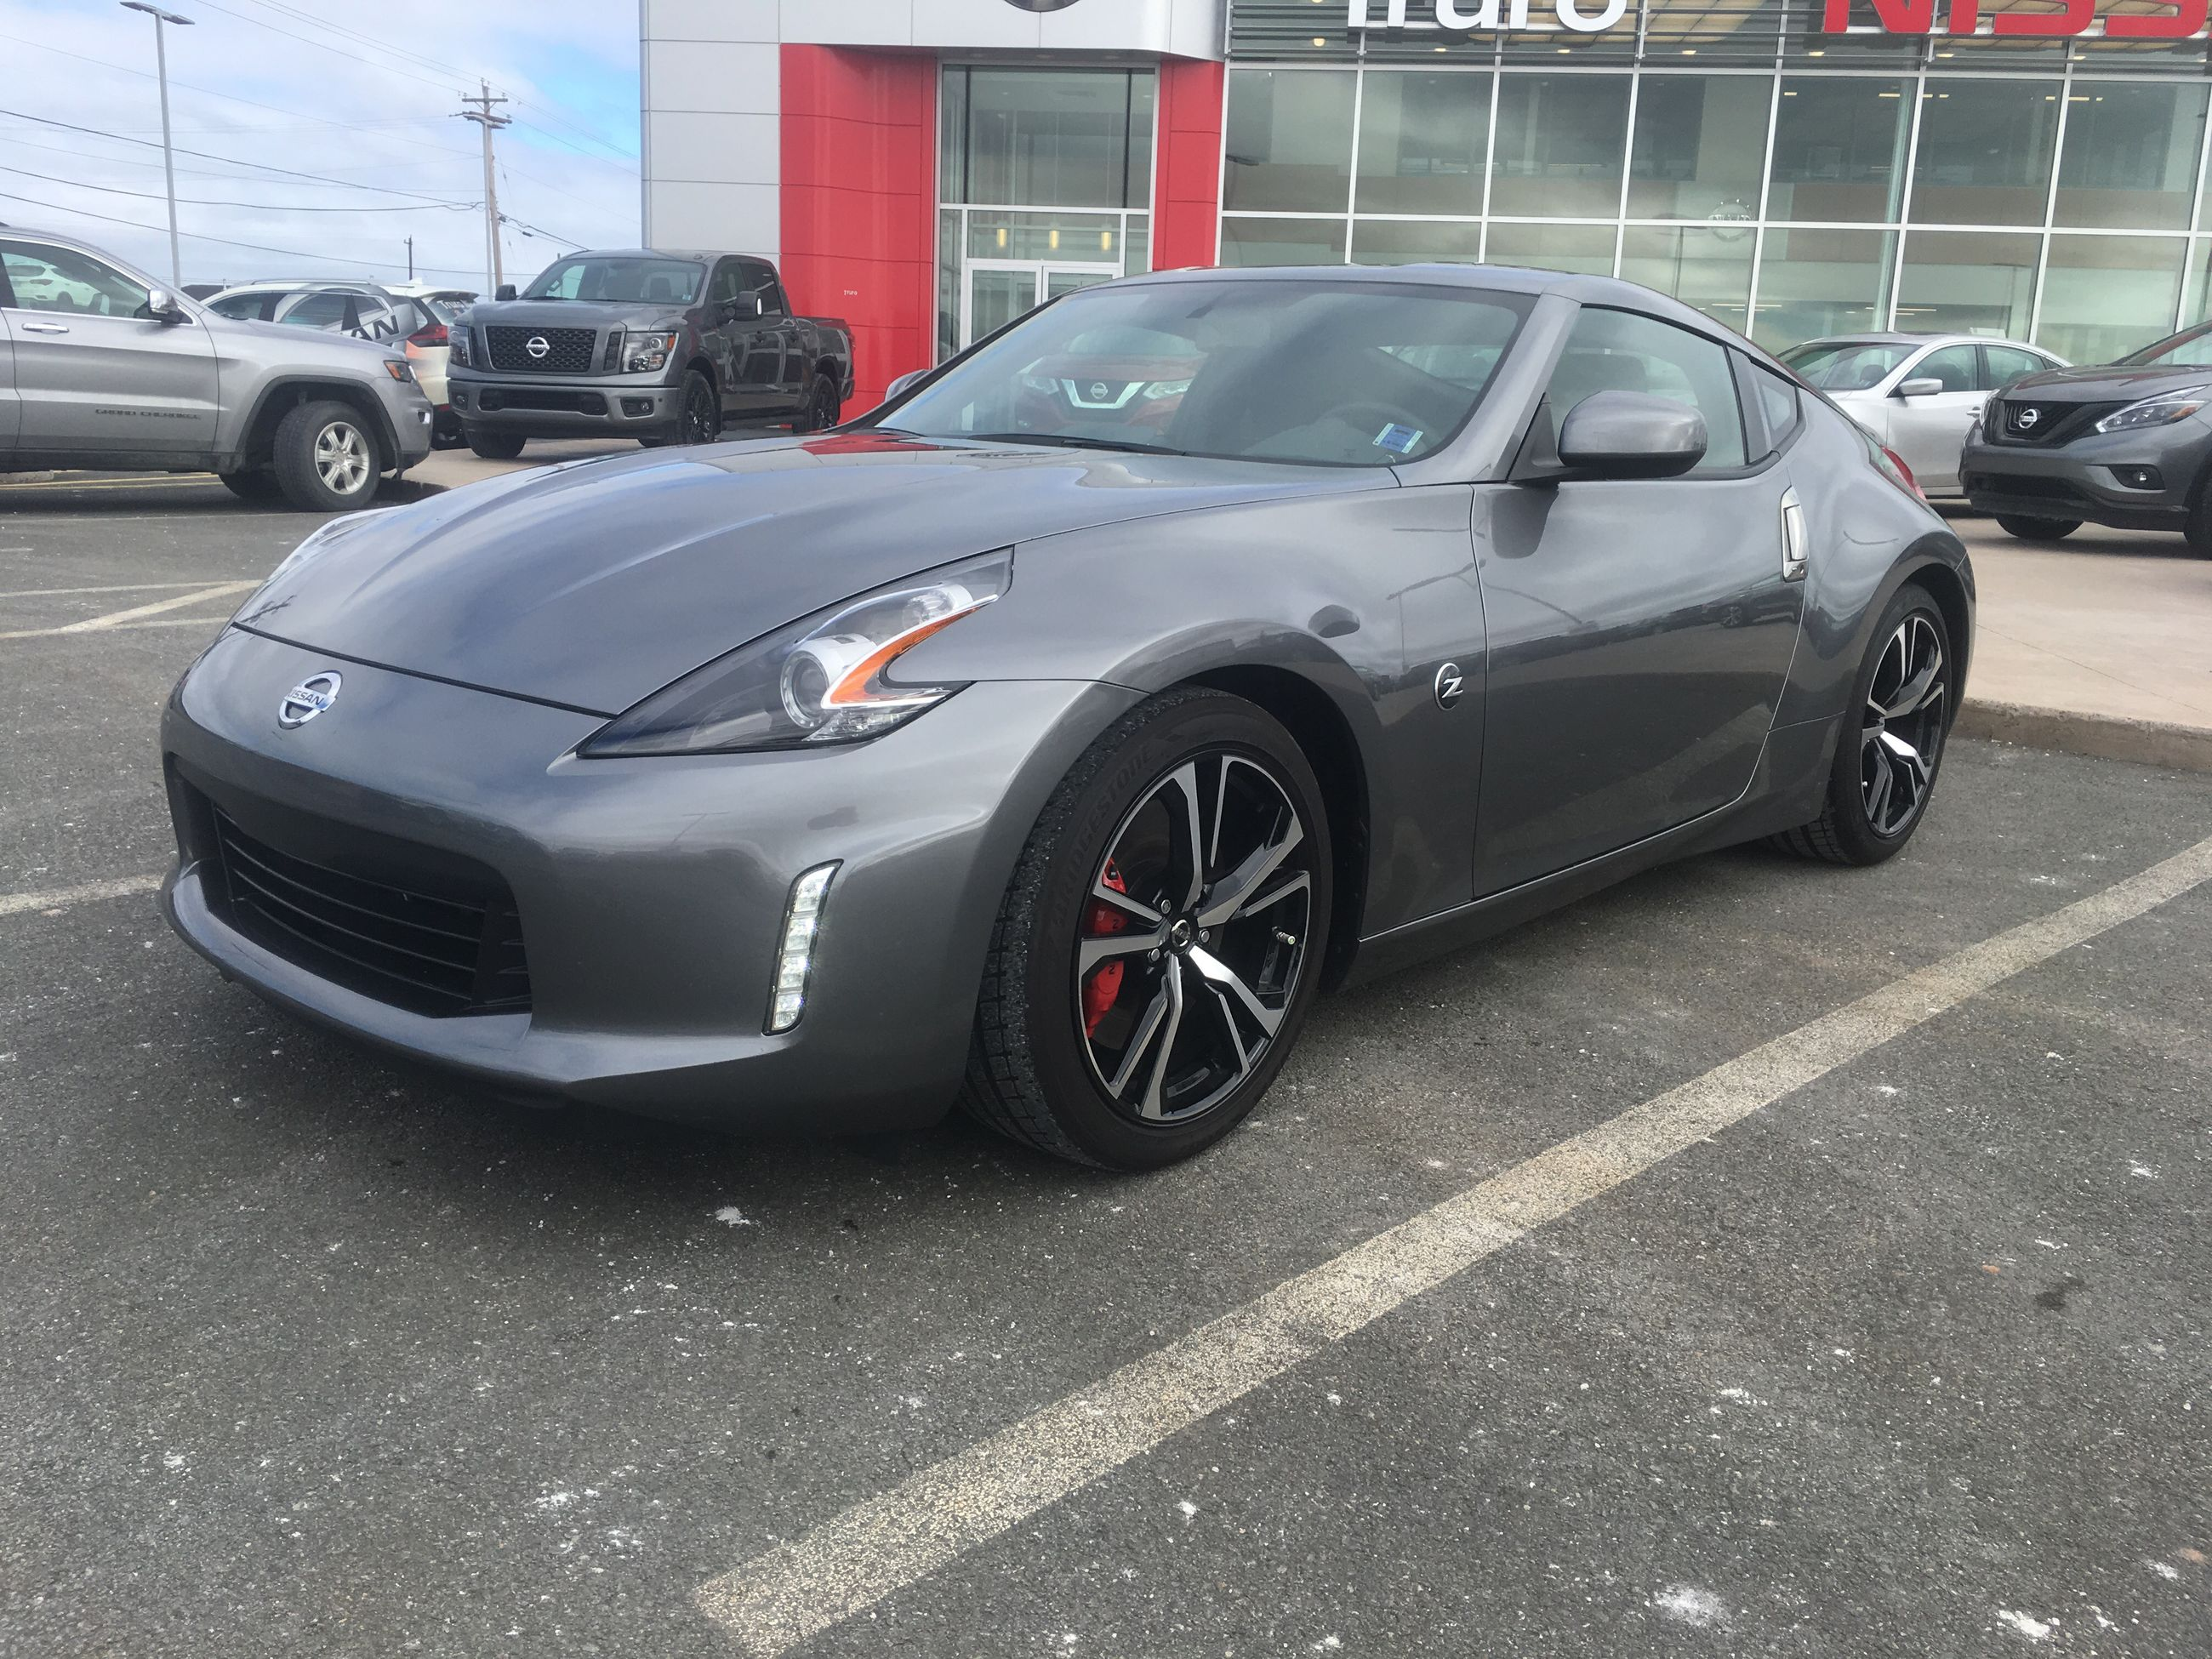 can ever z nissan the production you news for first sale own built